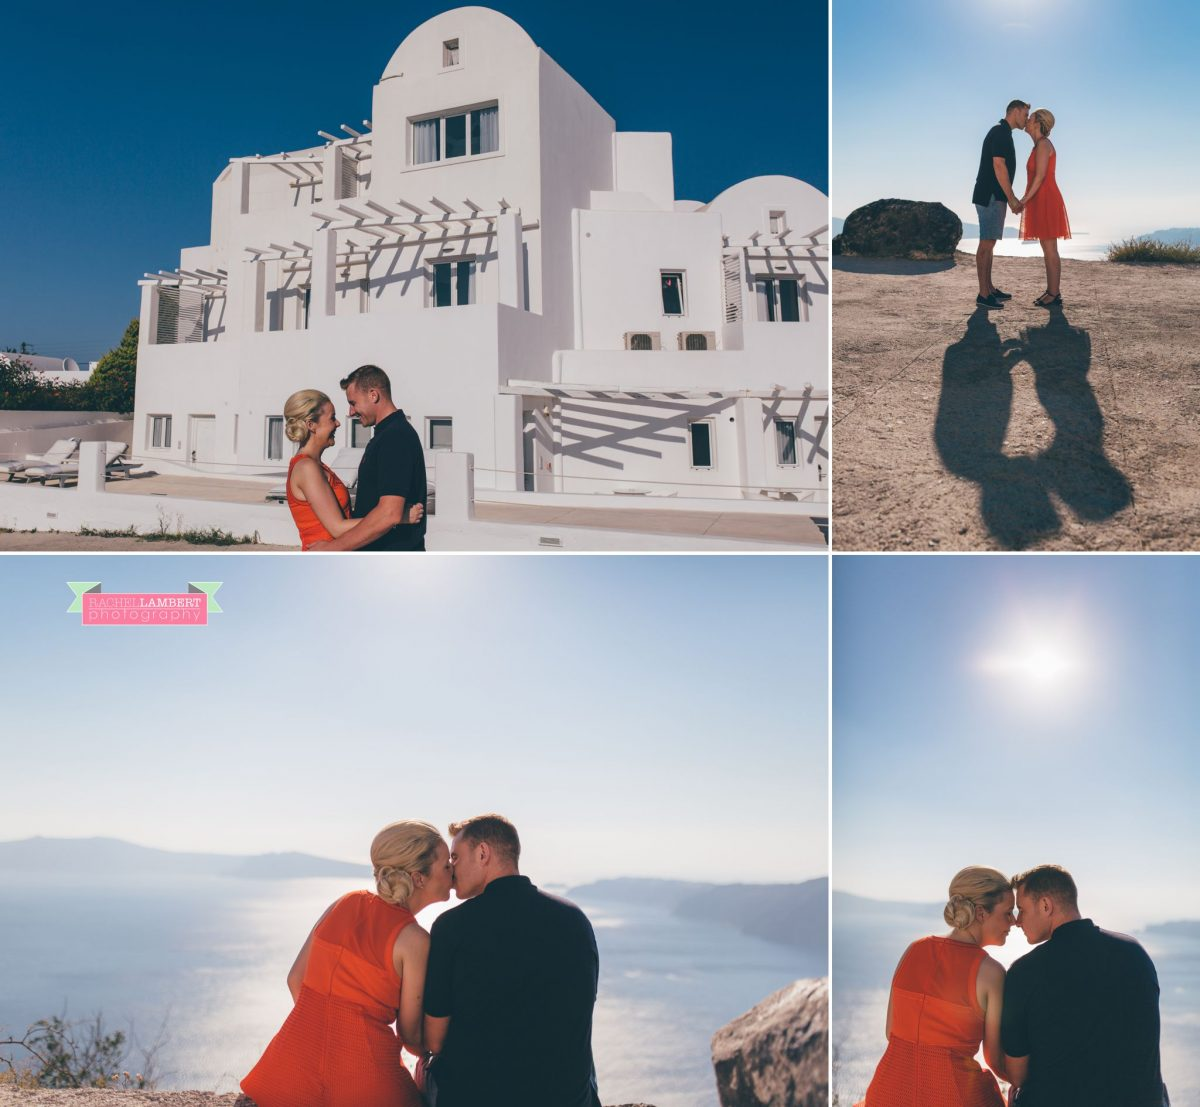 rachel_lambert_photography_santorini_greece_pre-wedding_shoot_engagement_rach_matt_ 3